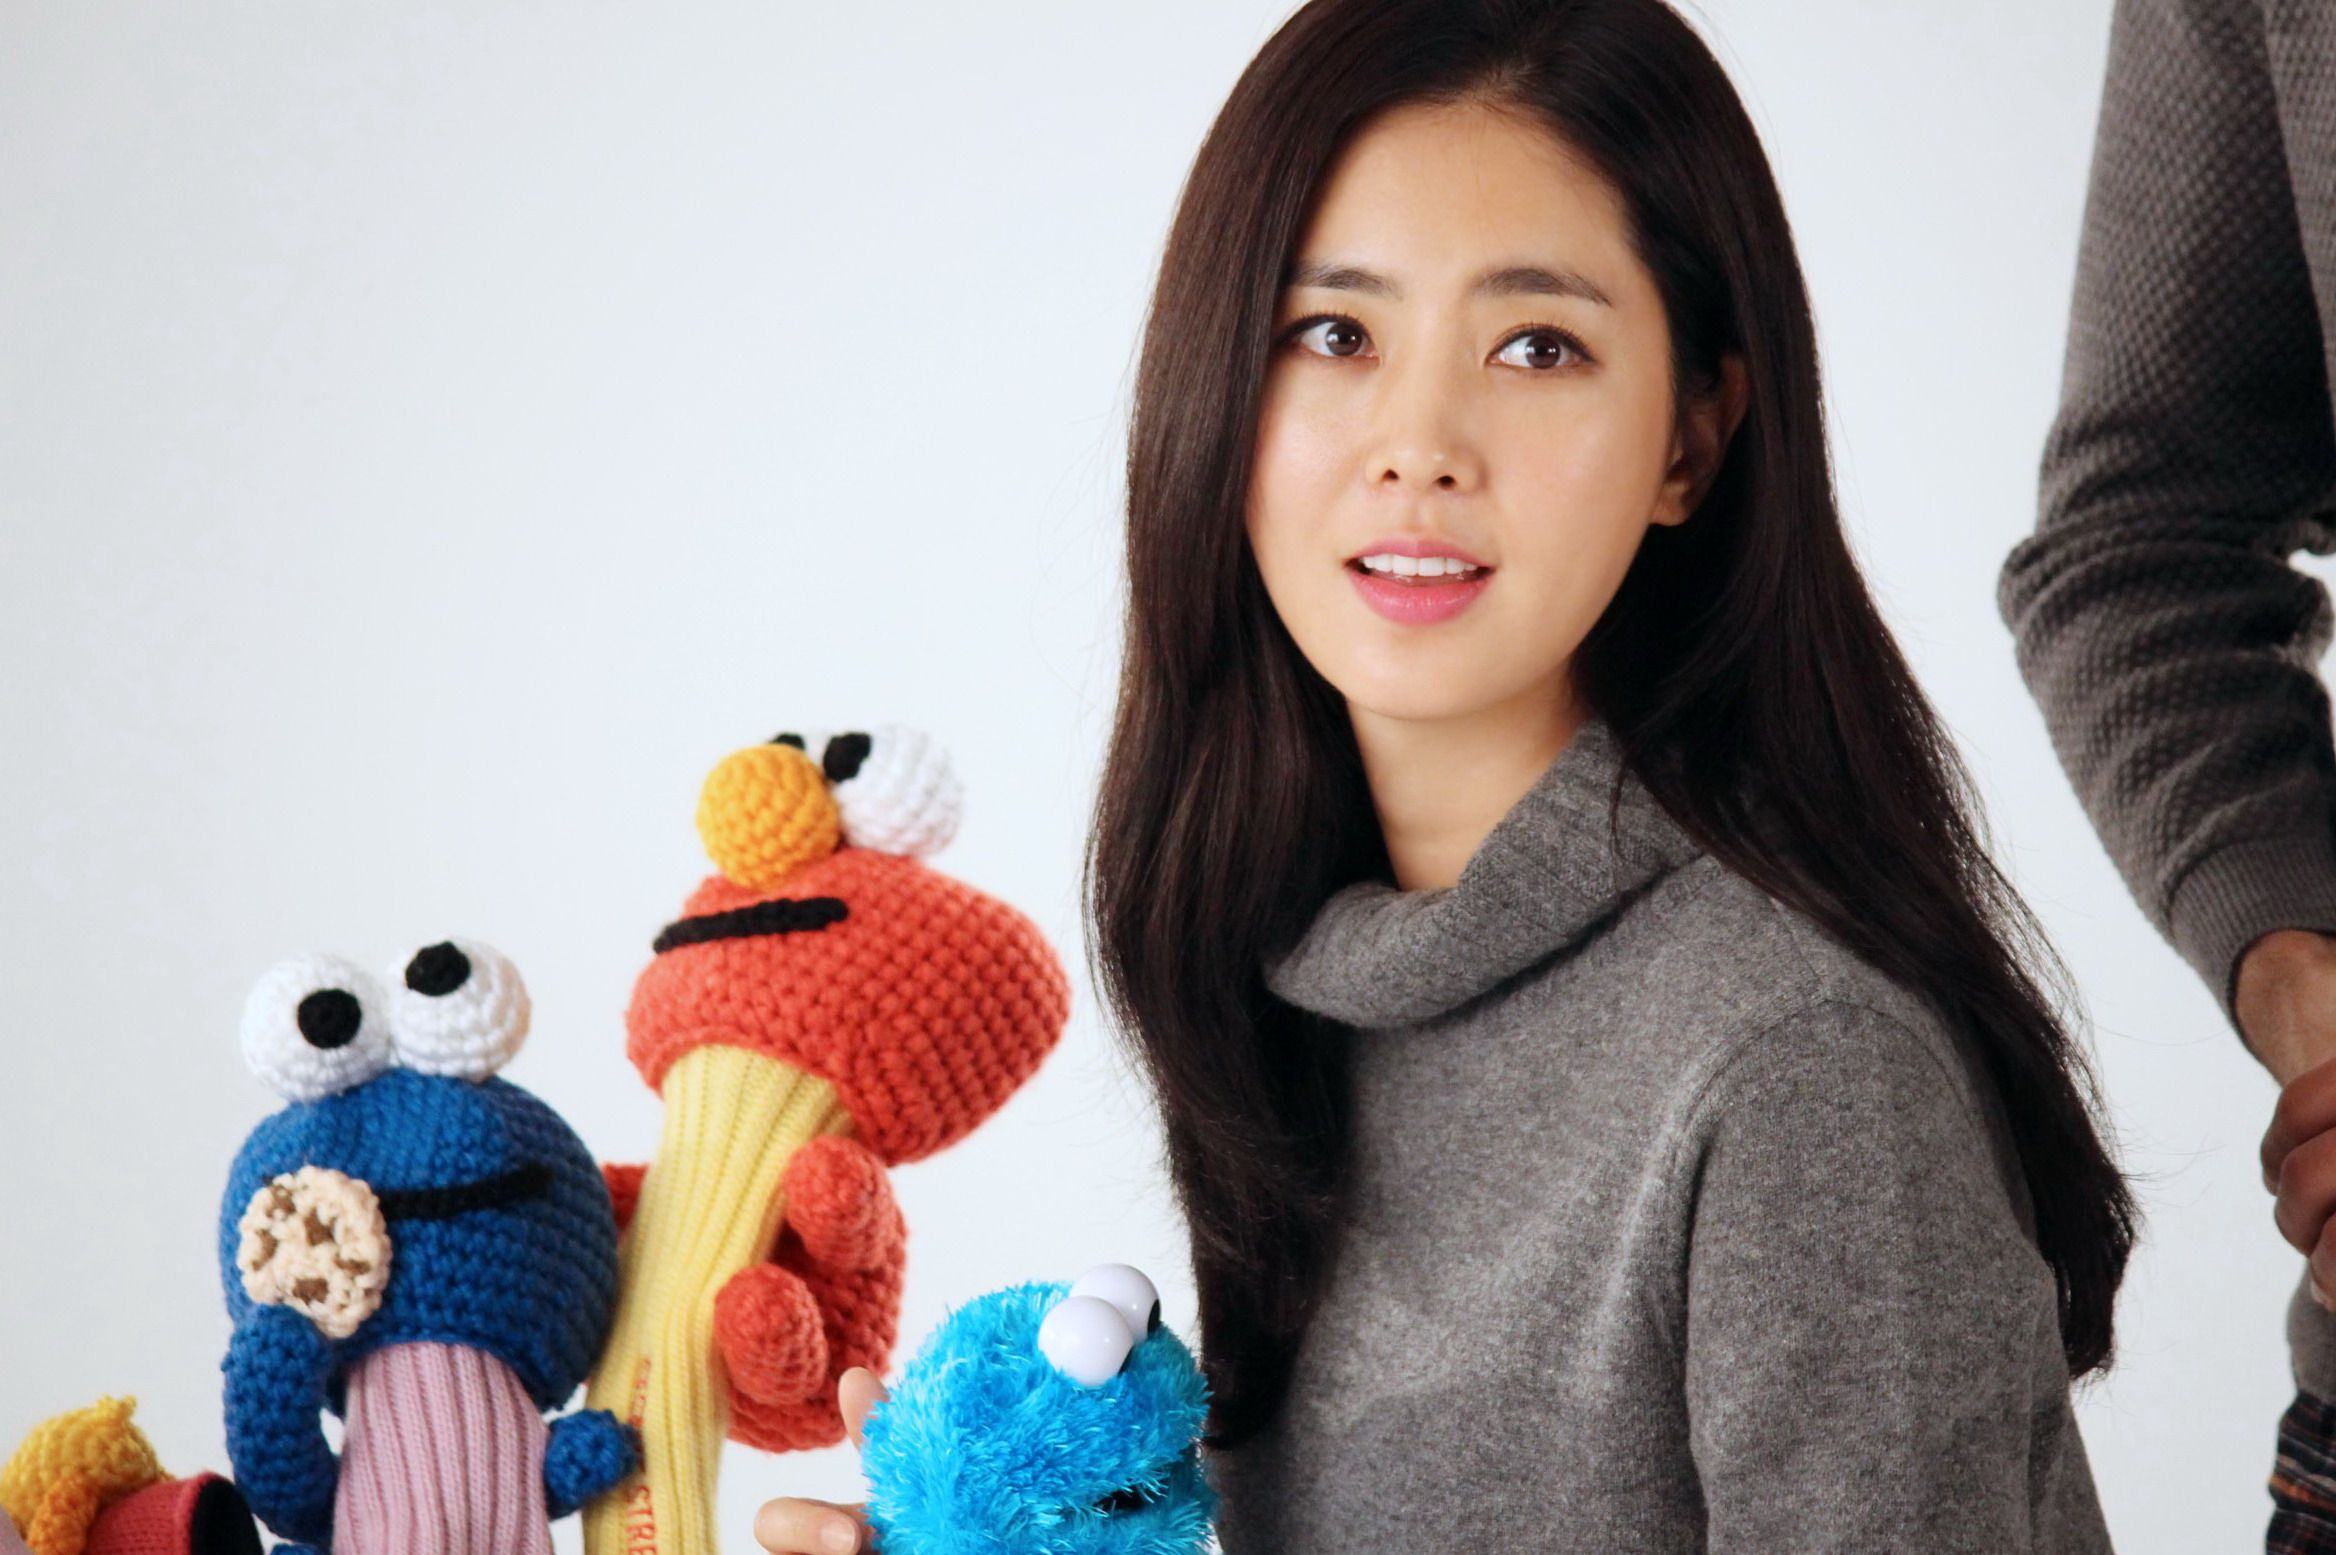 Han Chae-ah (Profile, Facts, Married Life, Dating, and